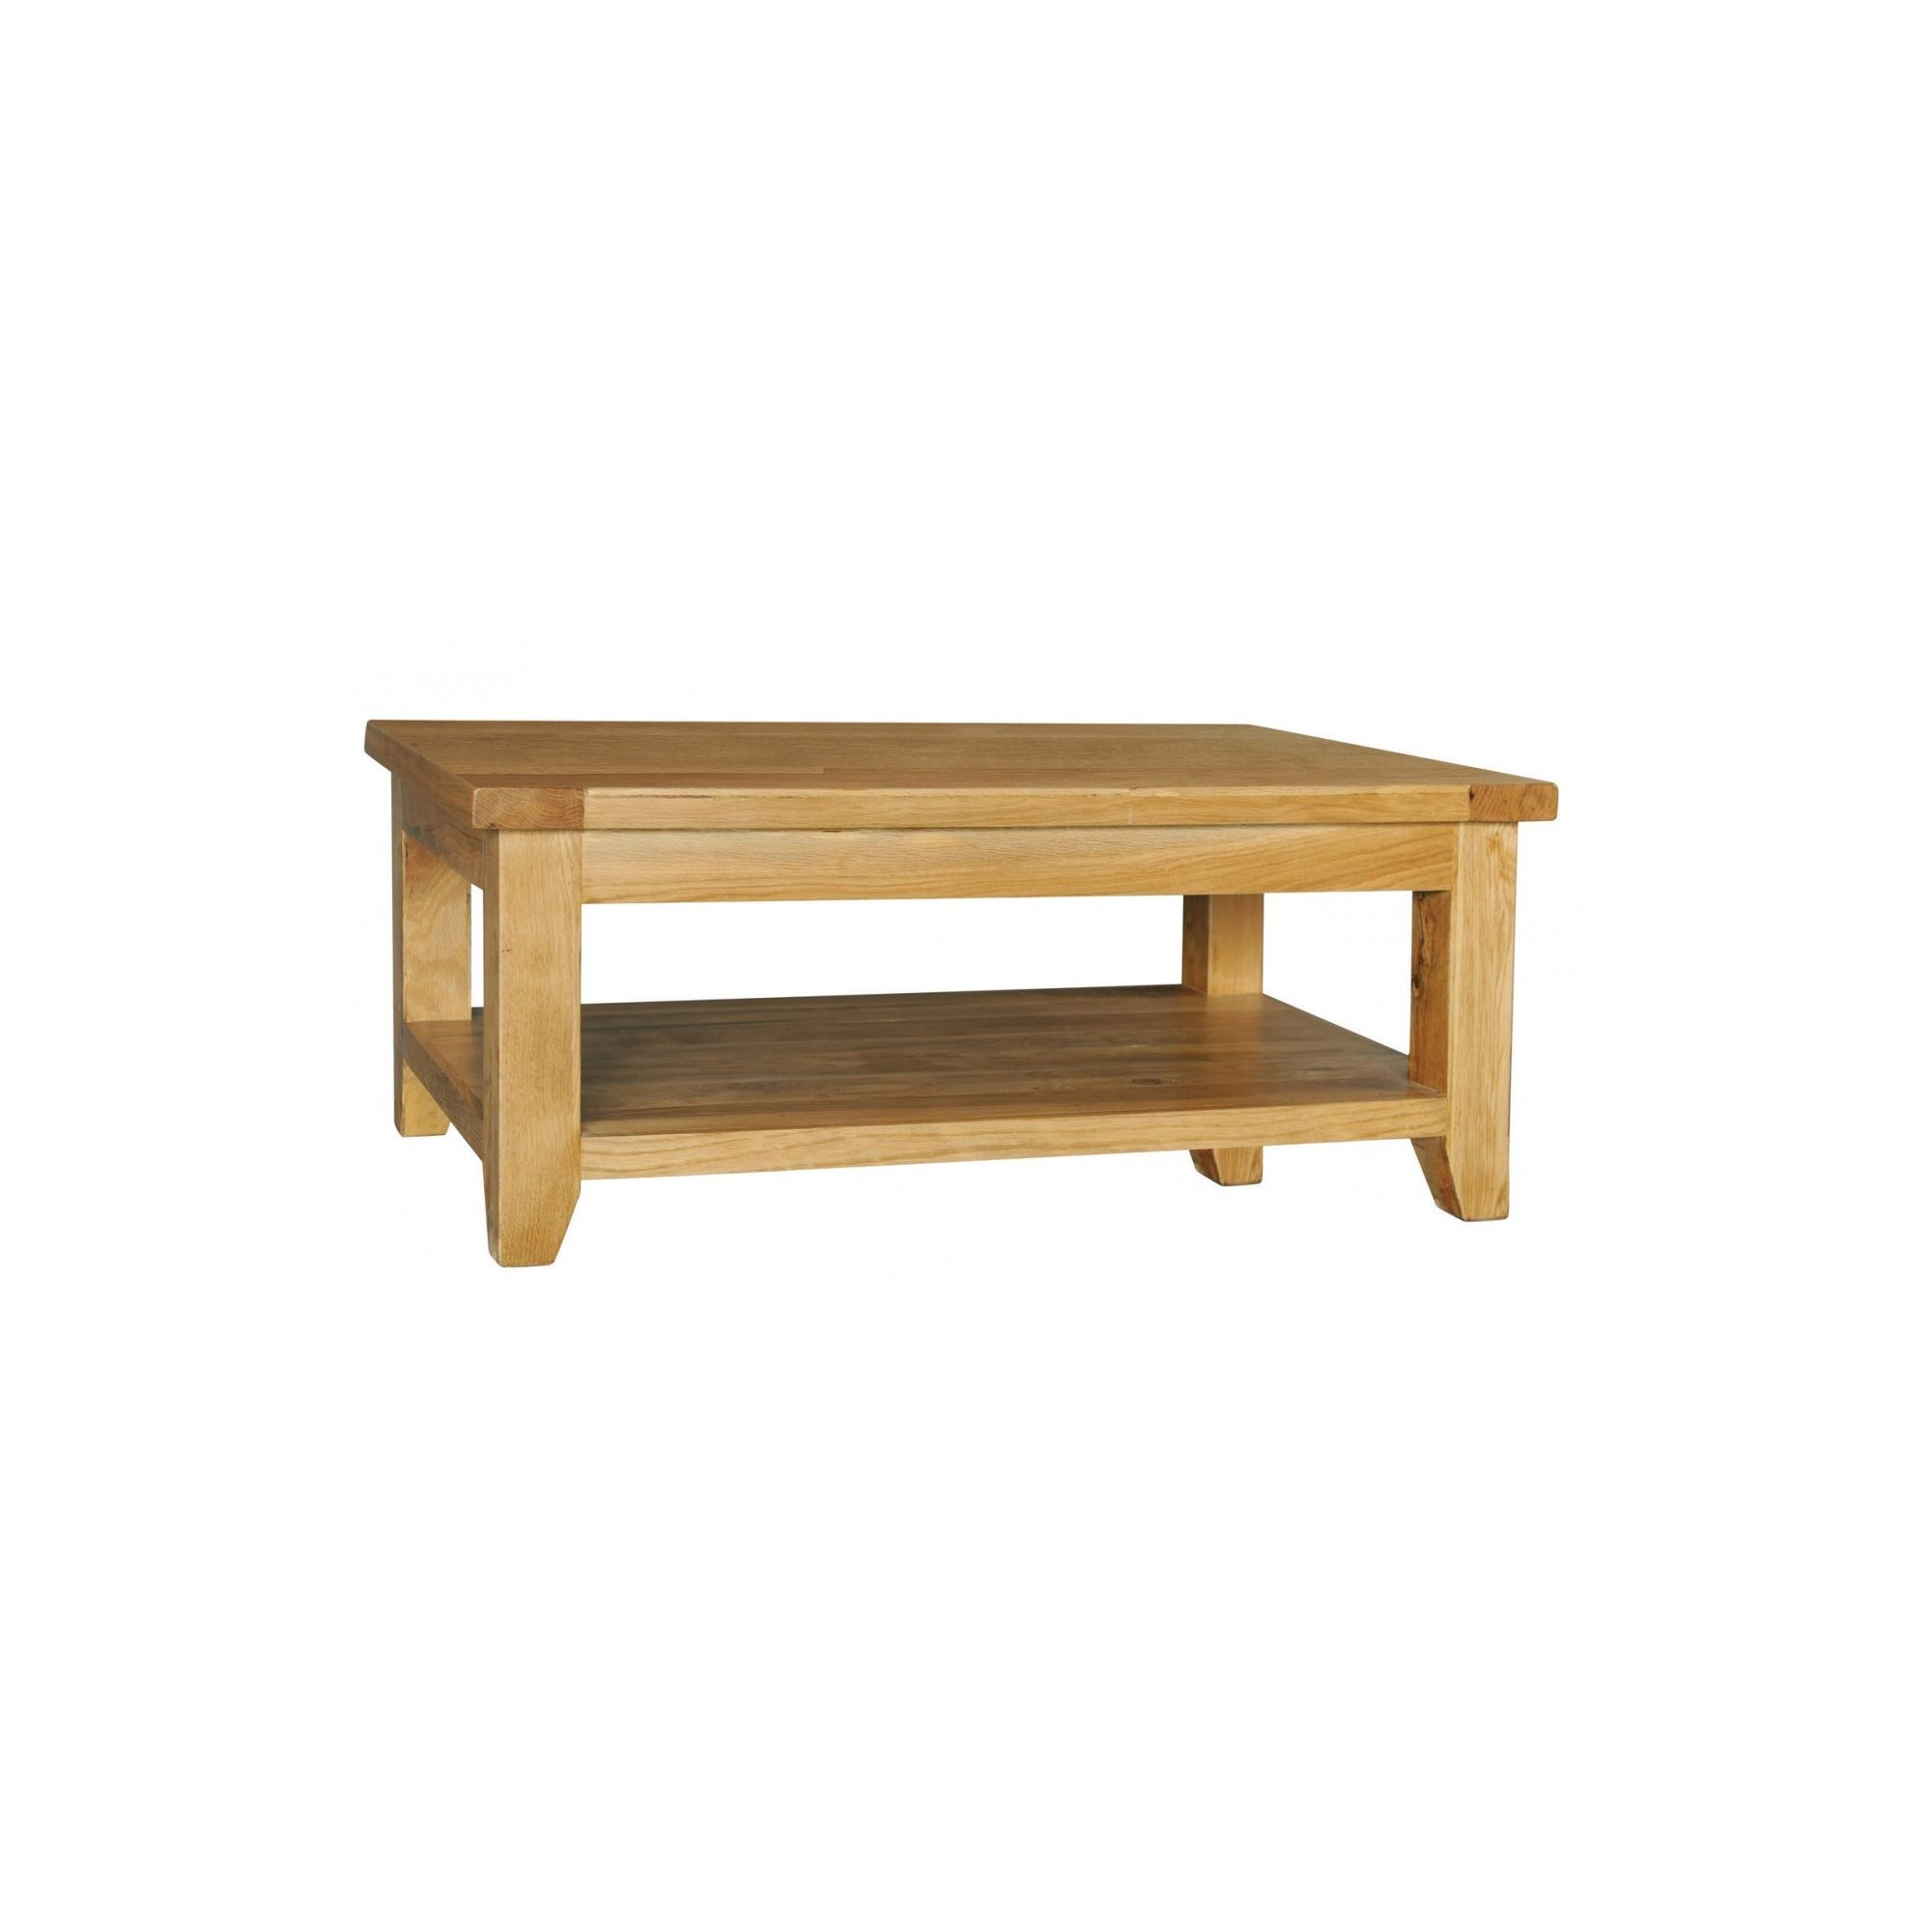 Hawkshead Calgary Rectangular Coffee Table with Shelf at Tesco Direct